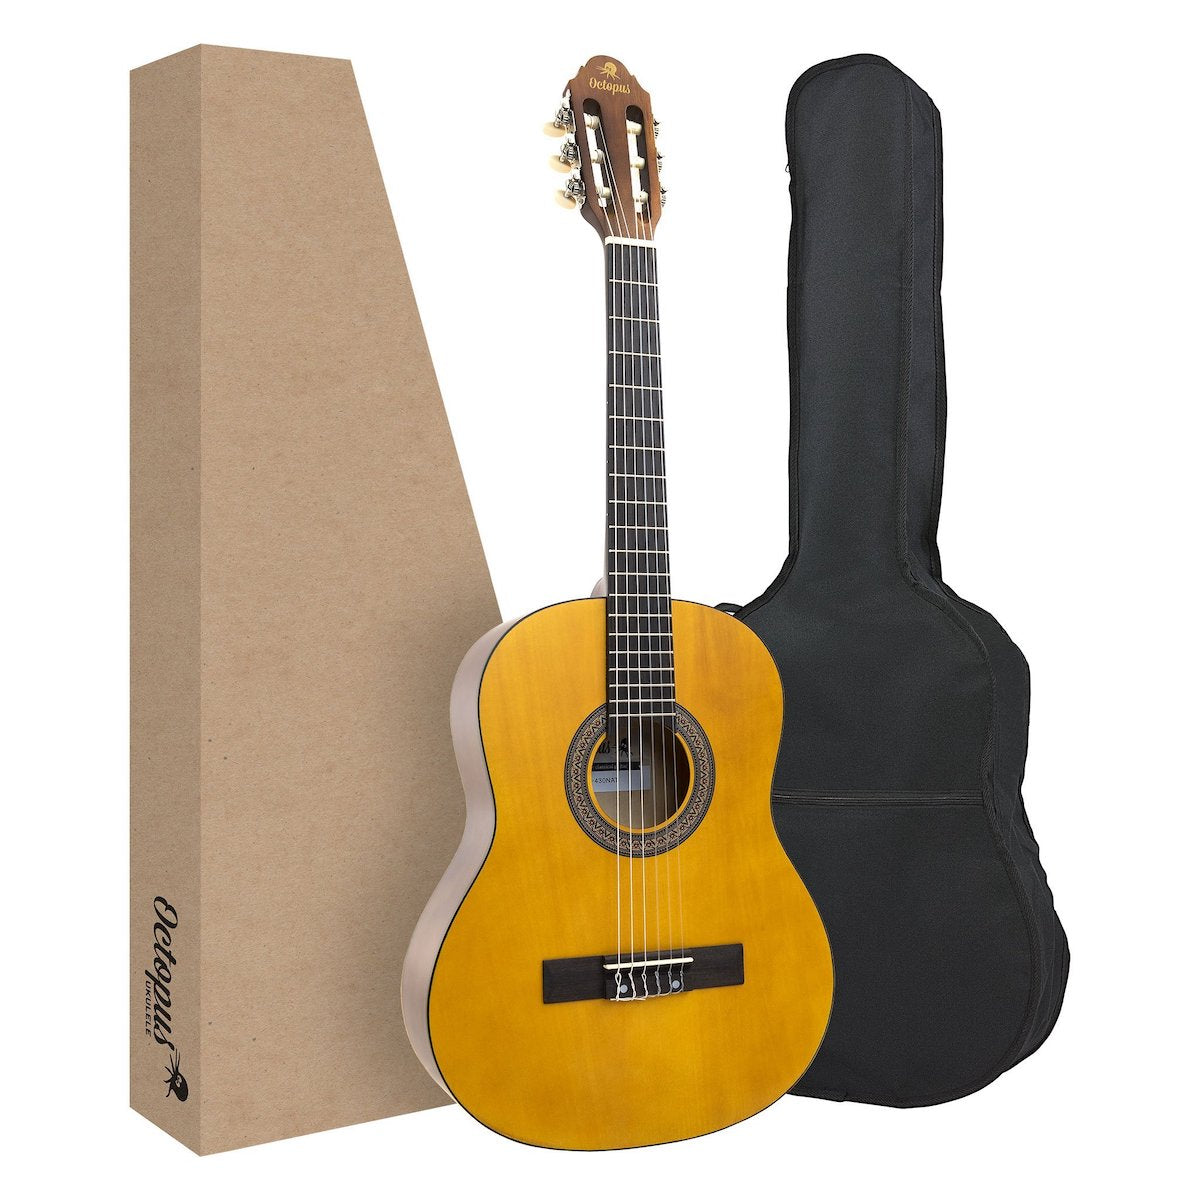 Octopus Classical Guitar (various sizes)